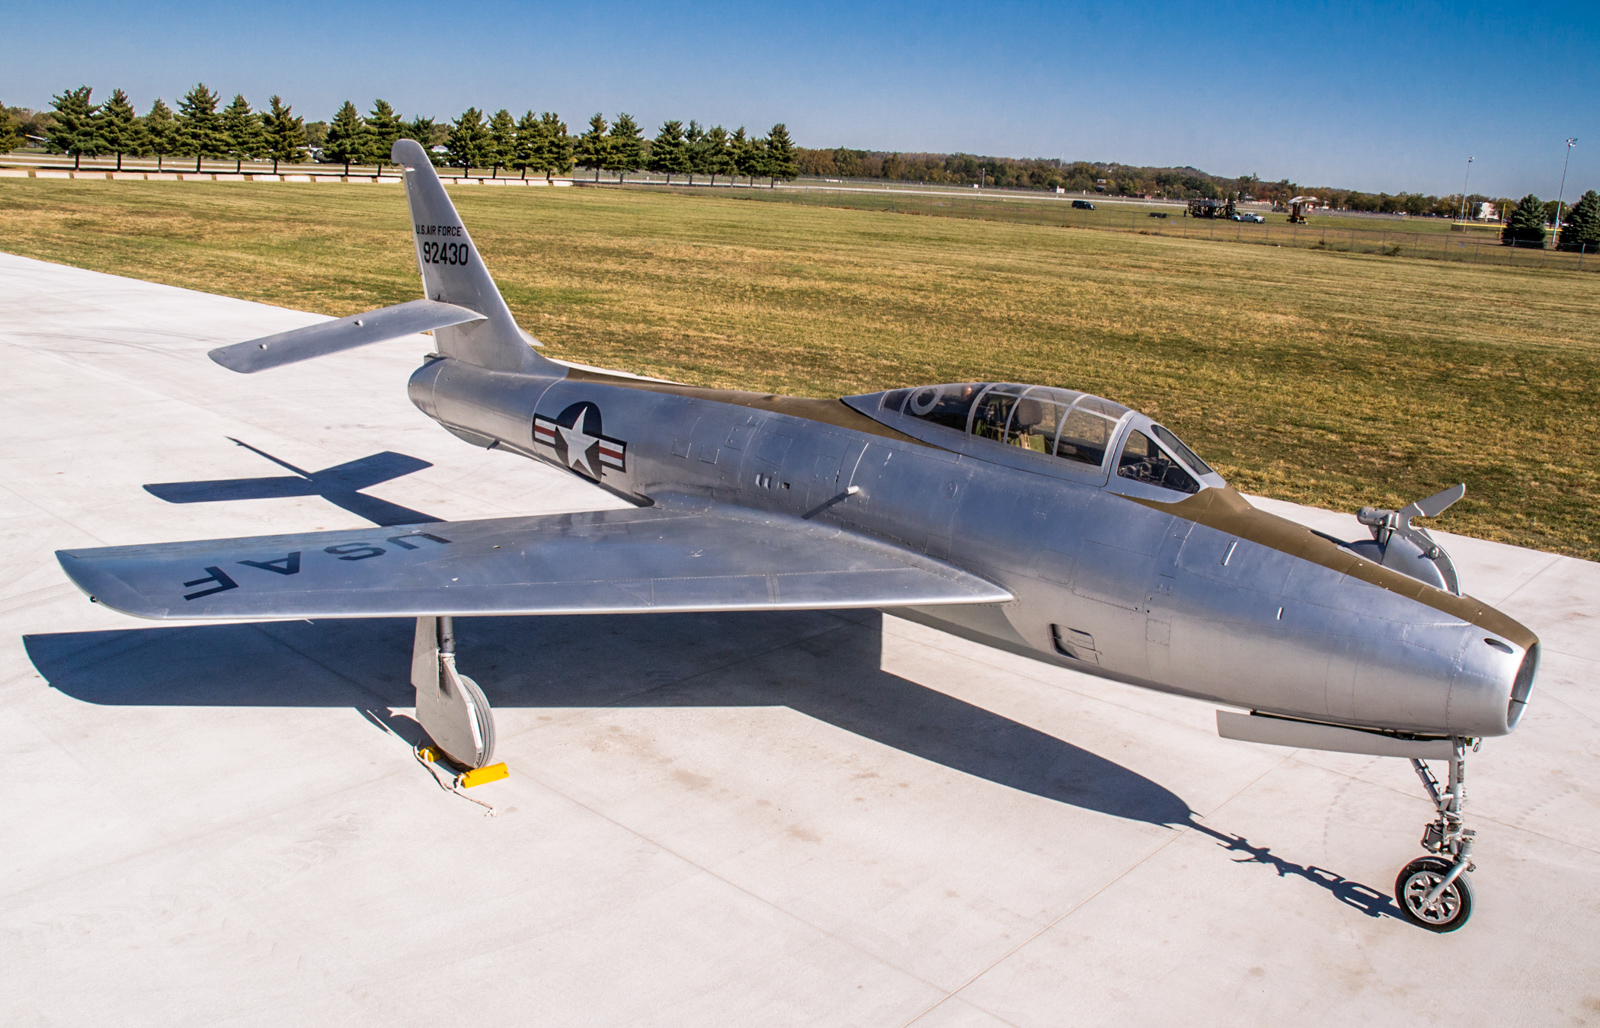 Restoration staff move the Republic YRF-84F Thunderflash FICON prototype into the new fourth building at the National Museum of the U.S. Air Force on Oct. 8, 2015. (U.S. Air Force photo by Ken LaRock)